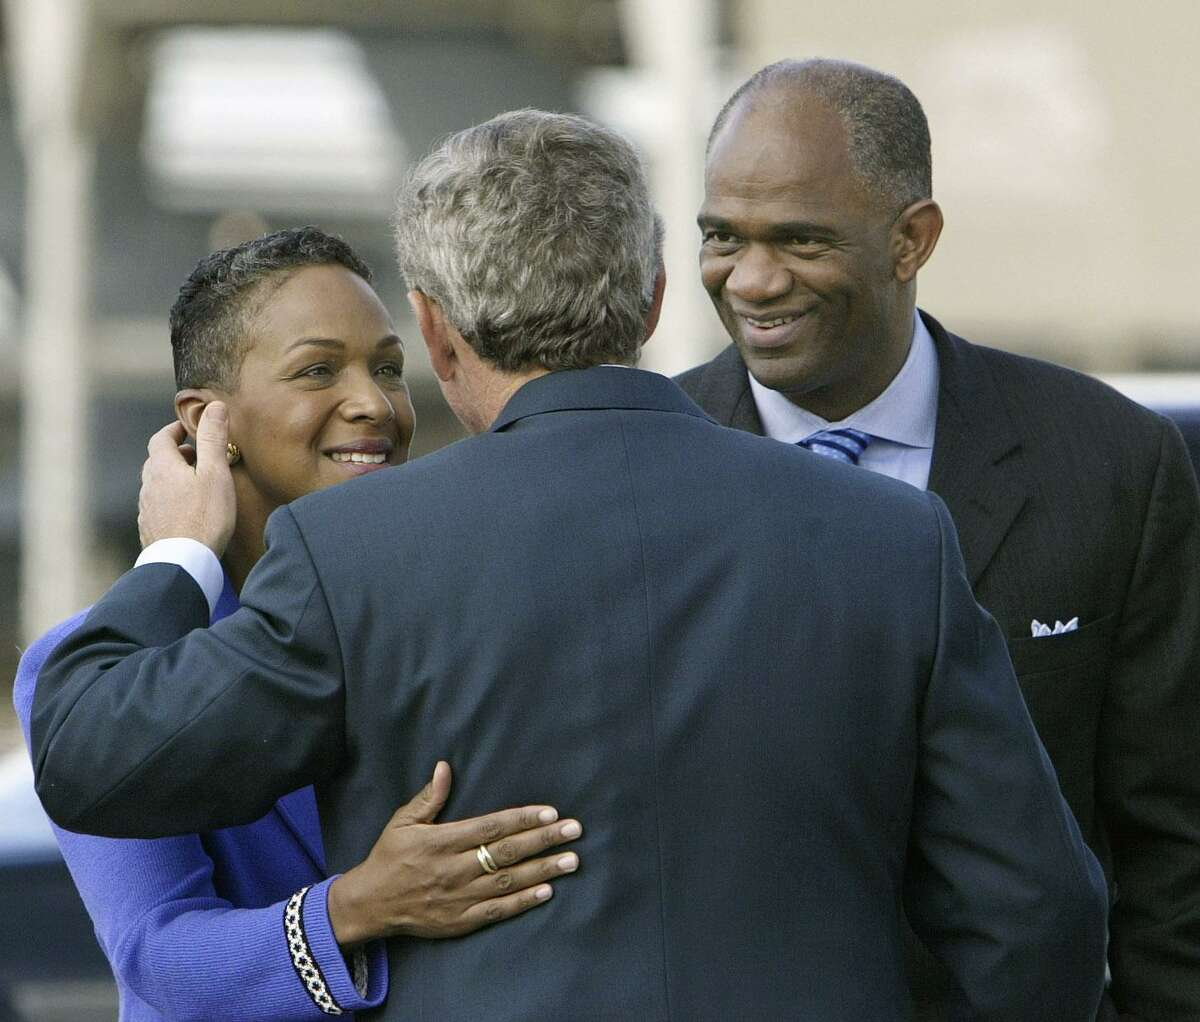 President Bush is welcomed to Houston after landing at Ellington Field by Pastor Kirbyjon Caldwell, right, and his wife Suzette at left, Friday, Sept. 12, 2003. President Bush will promote his faith-based initiative as he lends support to The Power Center, a huge multi-use complex celebrating ten years of community service in southwest Houston, run by Caldwell and business owners. (AP Photo/J. Scott Applewhite)